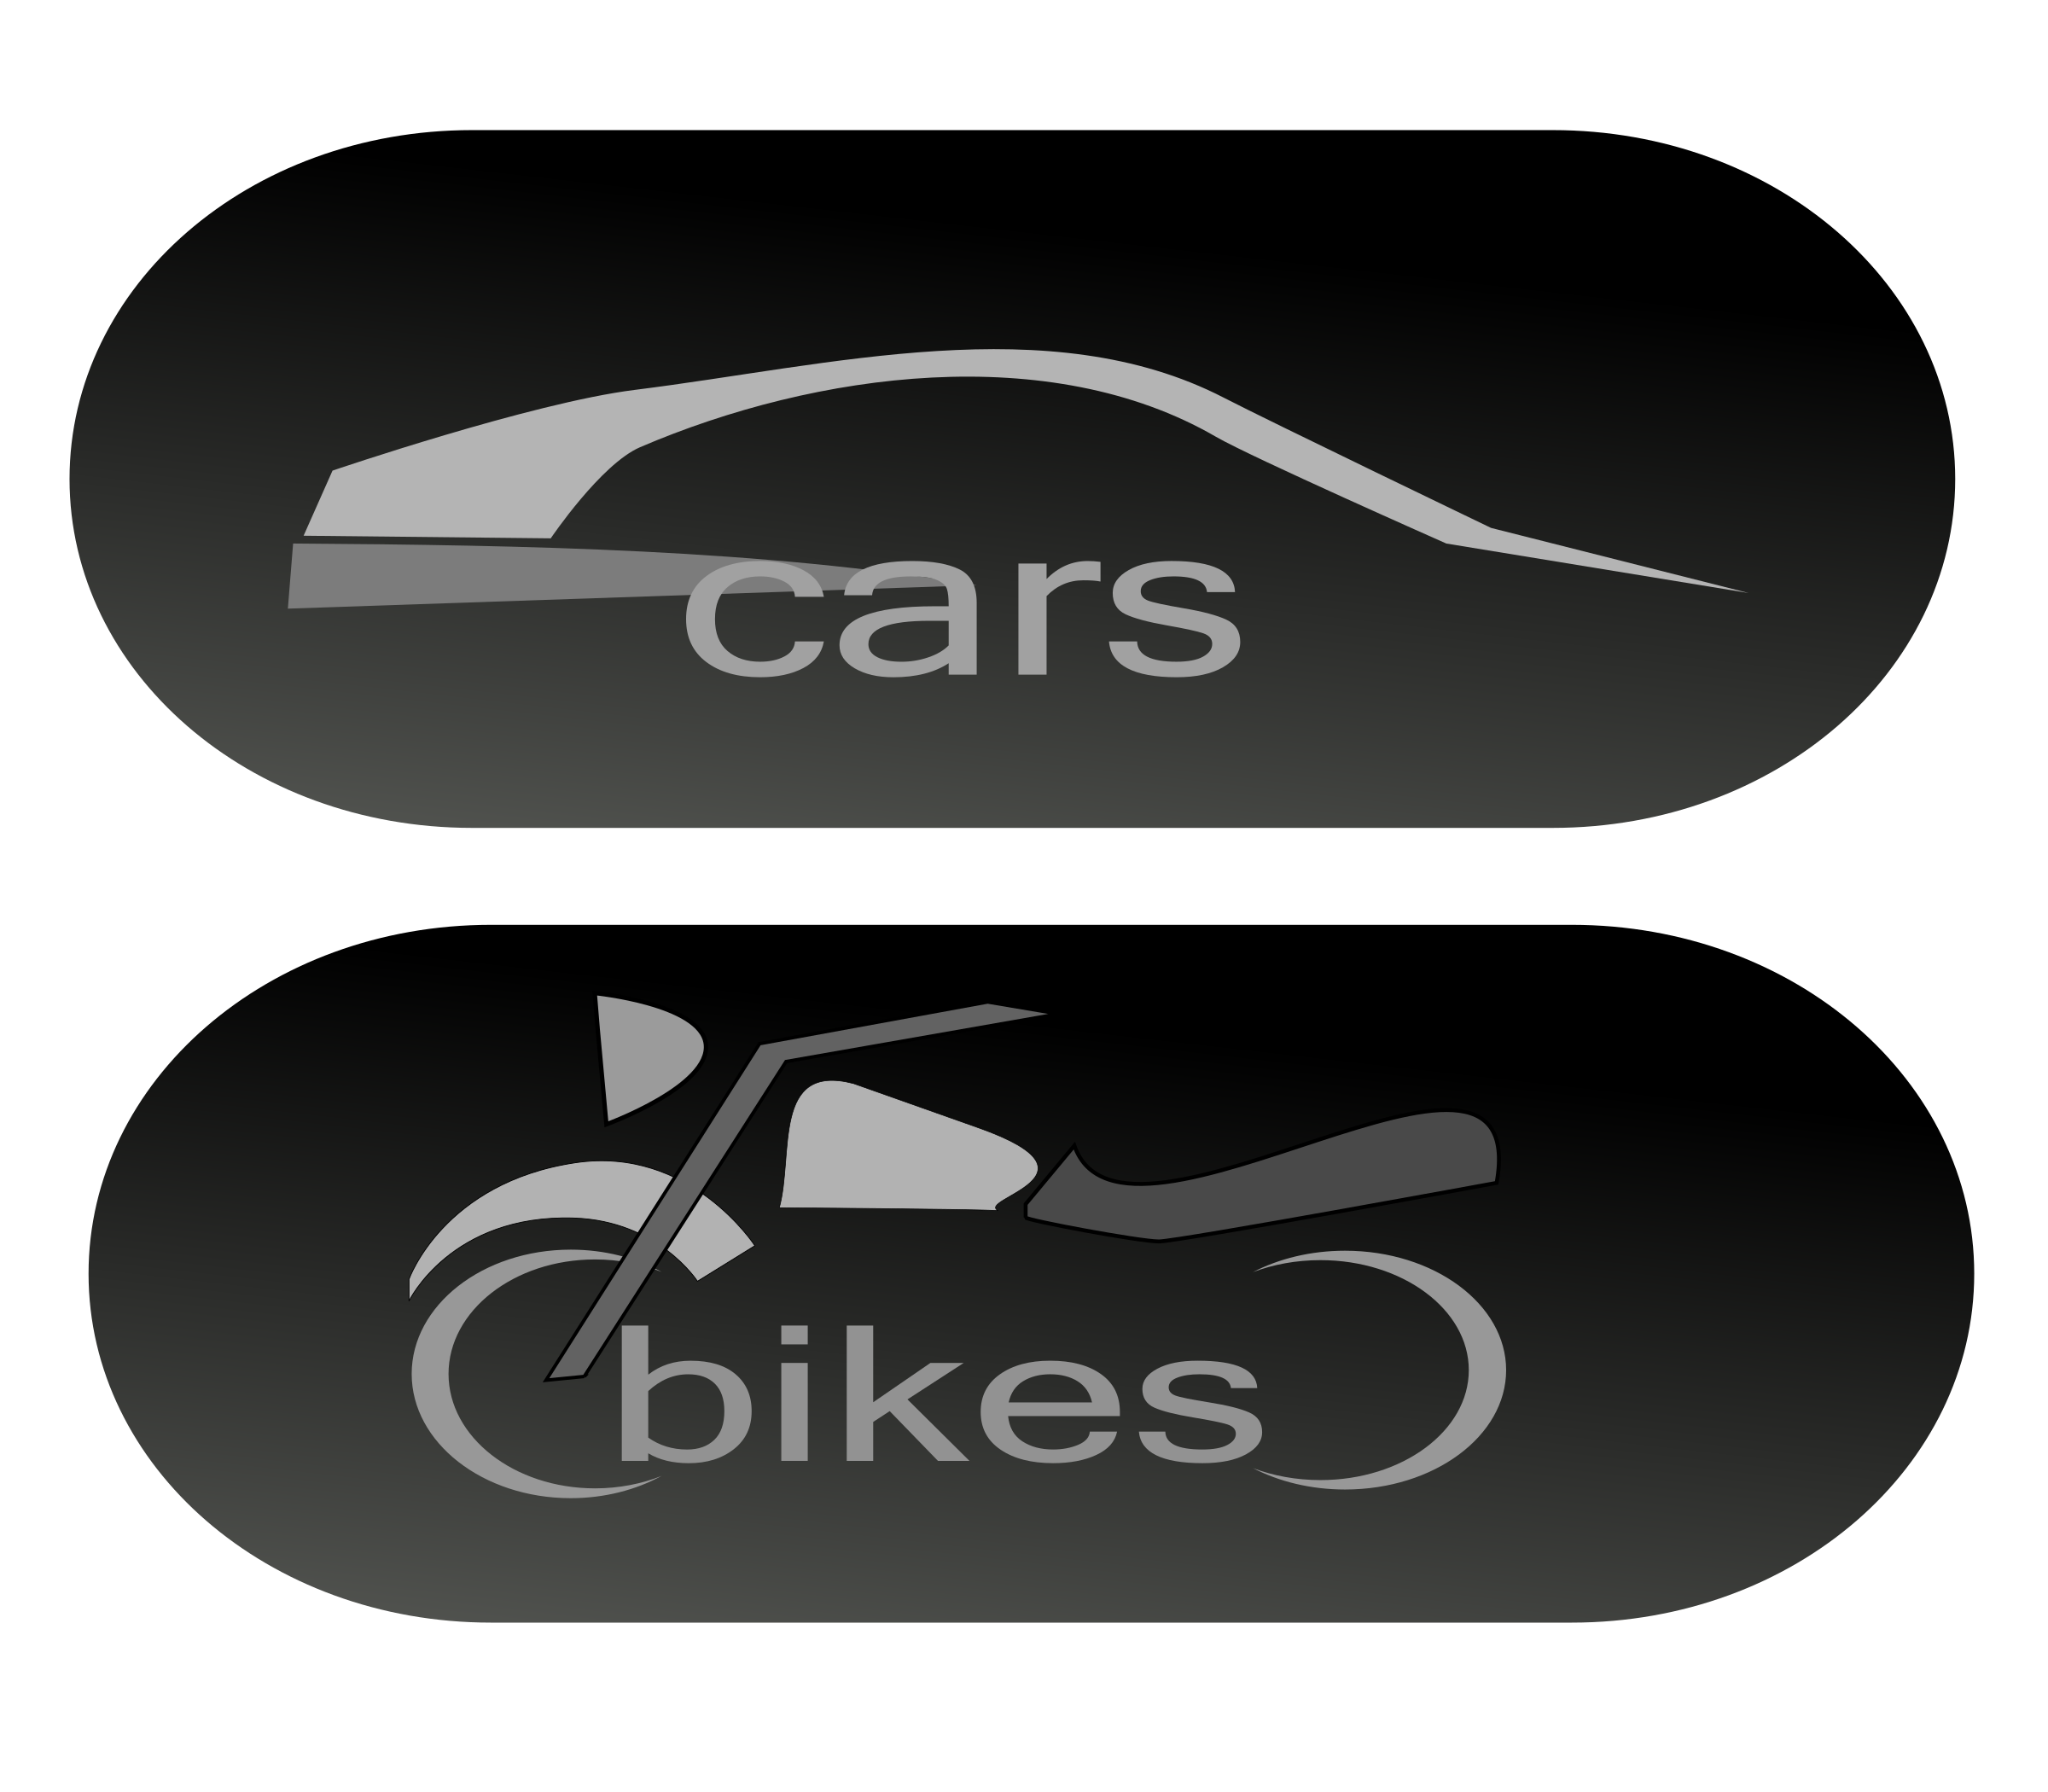 cars-and-bikes by netalloy